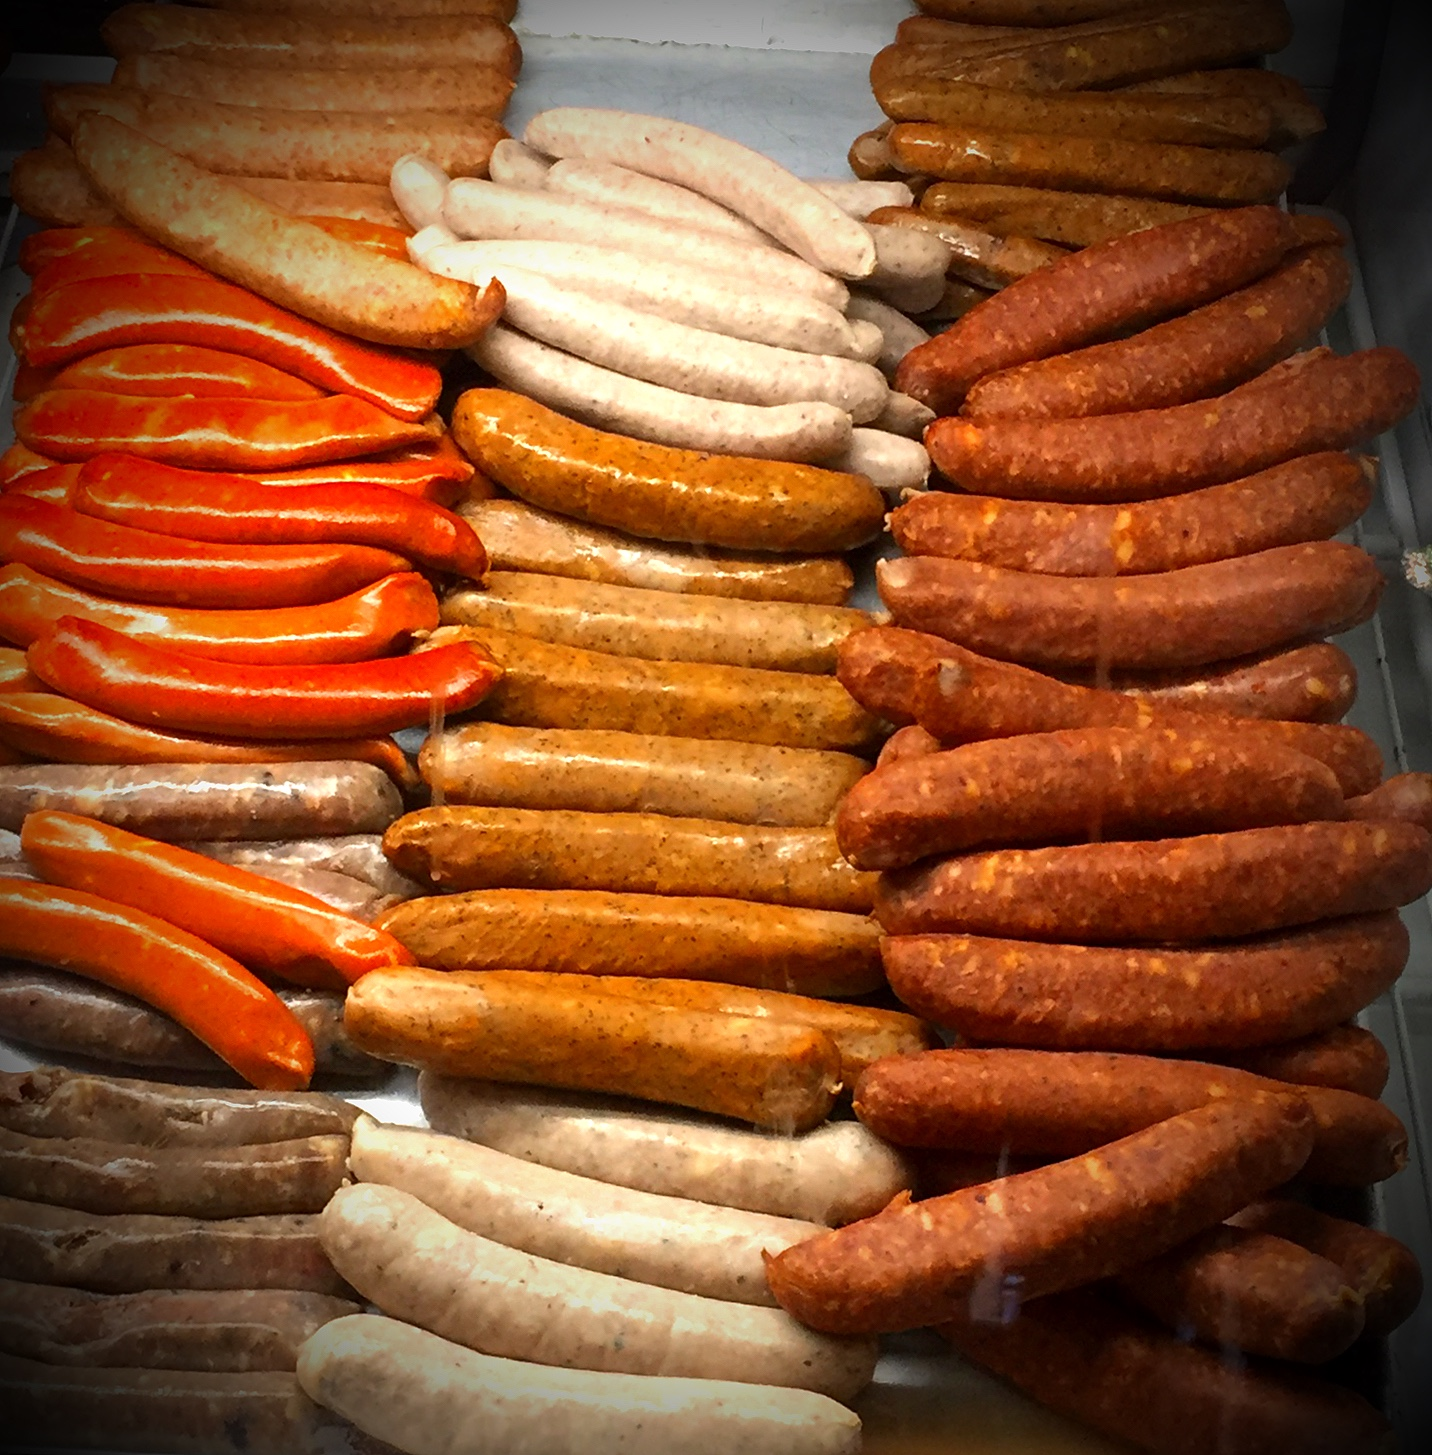 How to Smoke Sausage: 12 Steps (with Pictures) - wikiHow Pictures of a sausage